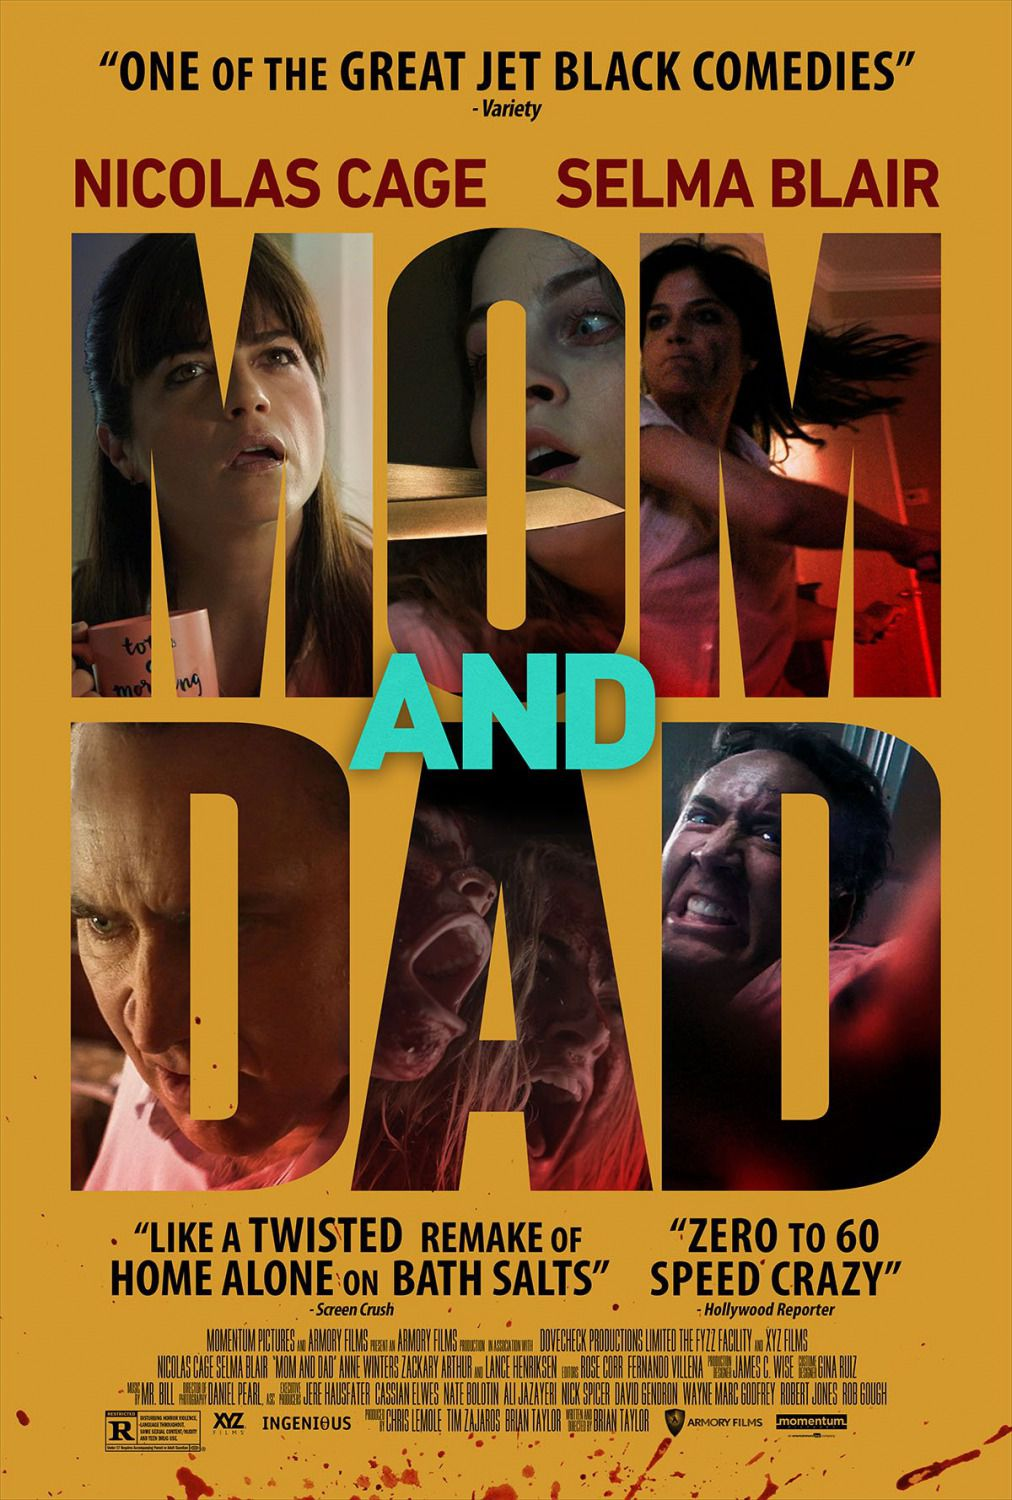 Mom and Dad - Nicolas Cage, Selma Blair - film poster